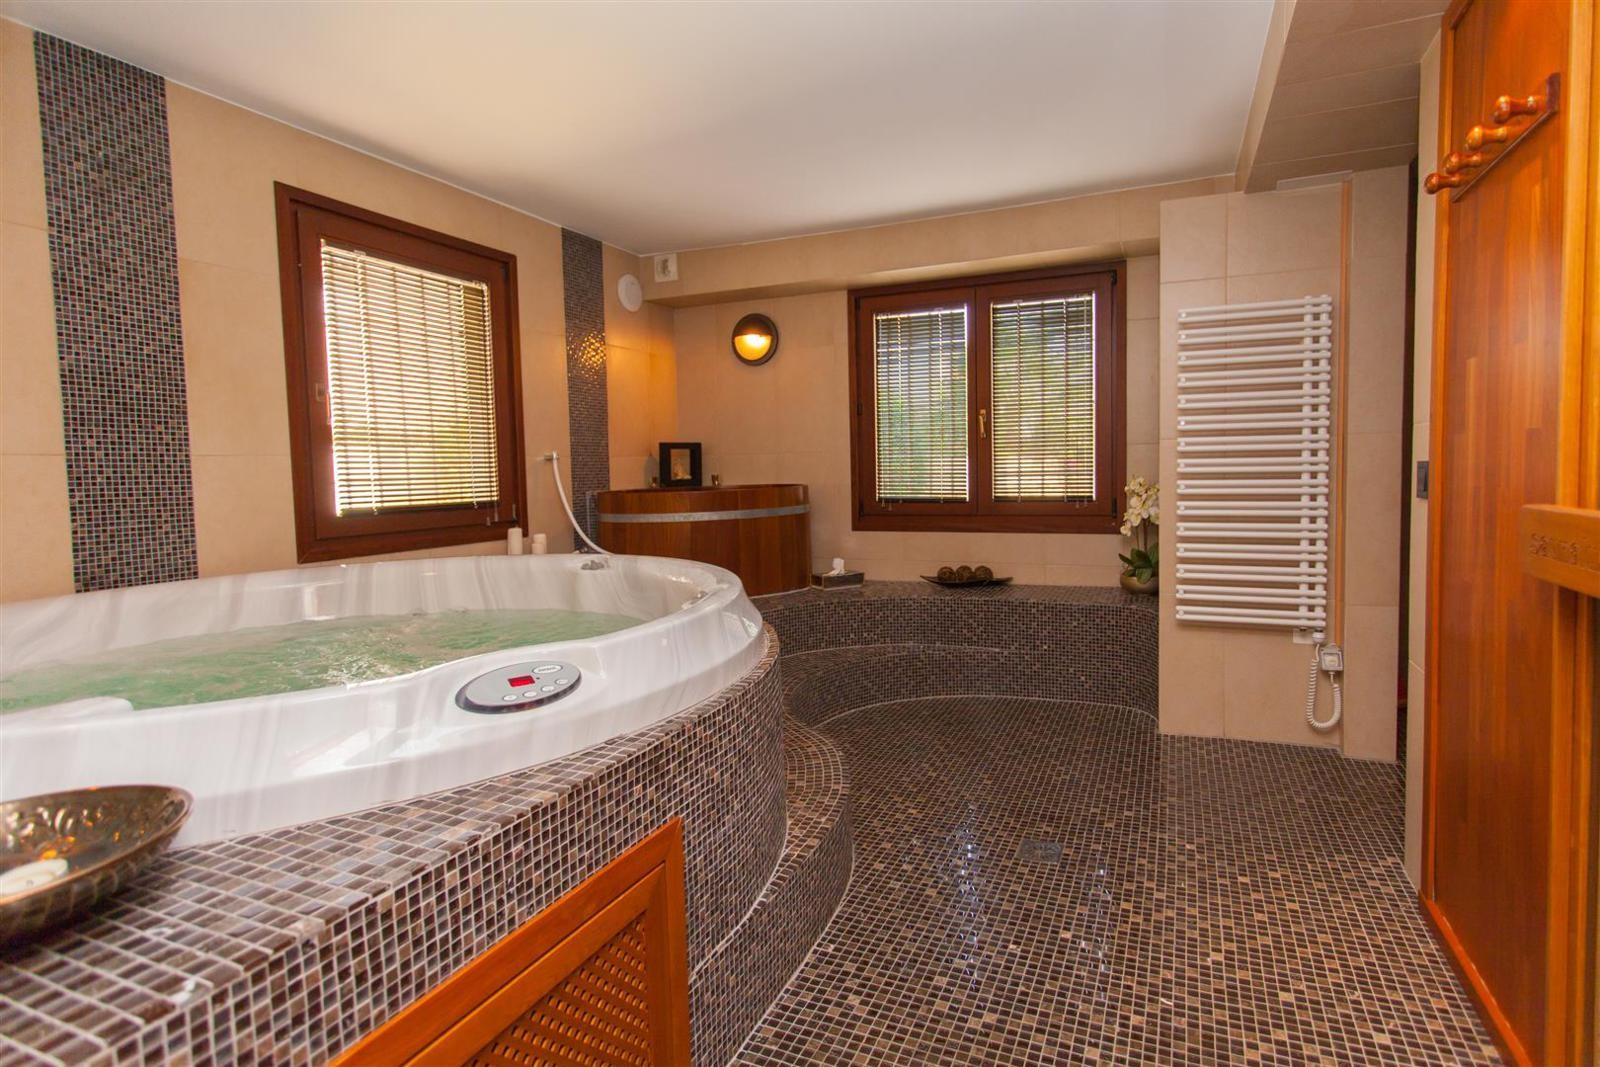 You Can Relax In Your Own Spa, That Consists Of A Sauna Heated By An  Electric Stove That Accommodates 4, ...